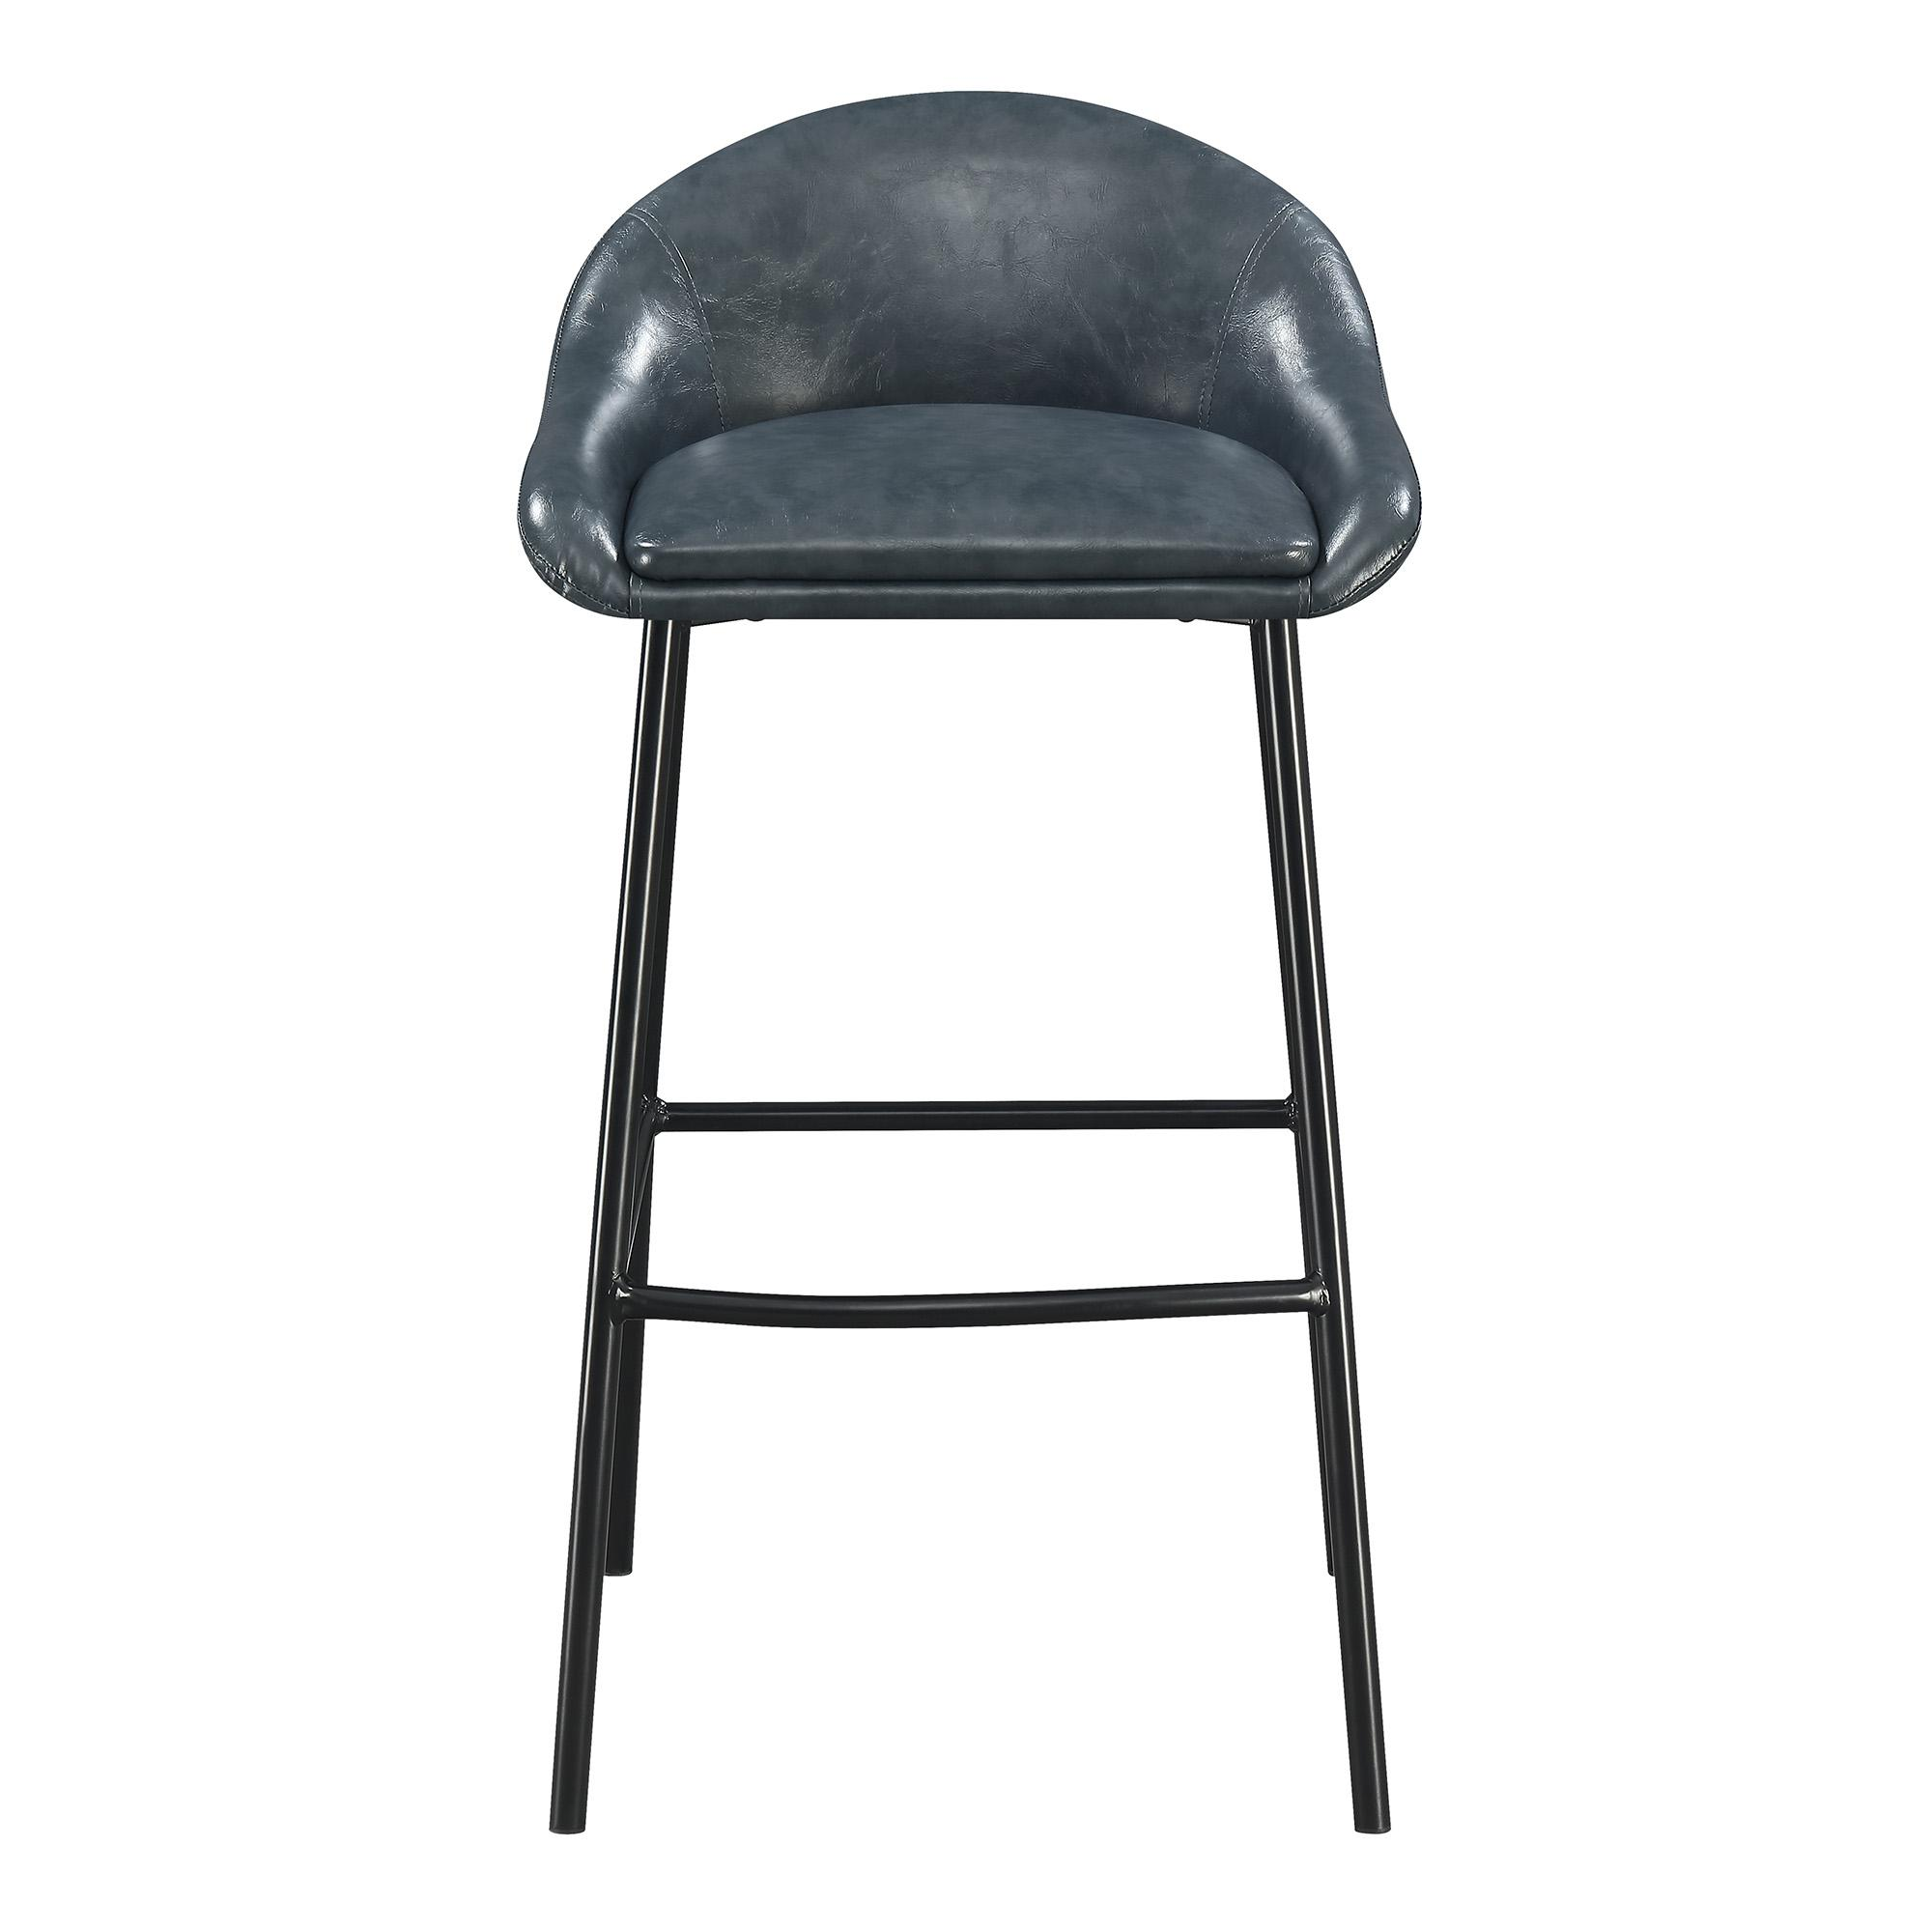 Astonishing Picket House Matthews Blue Low Back Bar Stool Andrewgaddart Wooden Chair Designs For Living Room Andrewgaddartcom